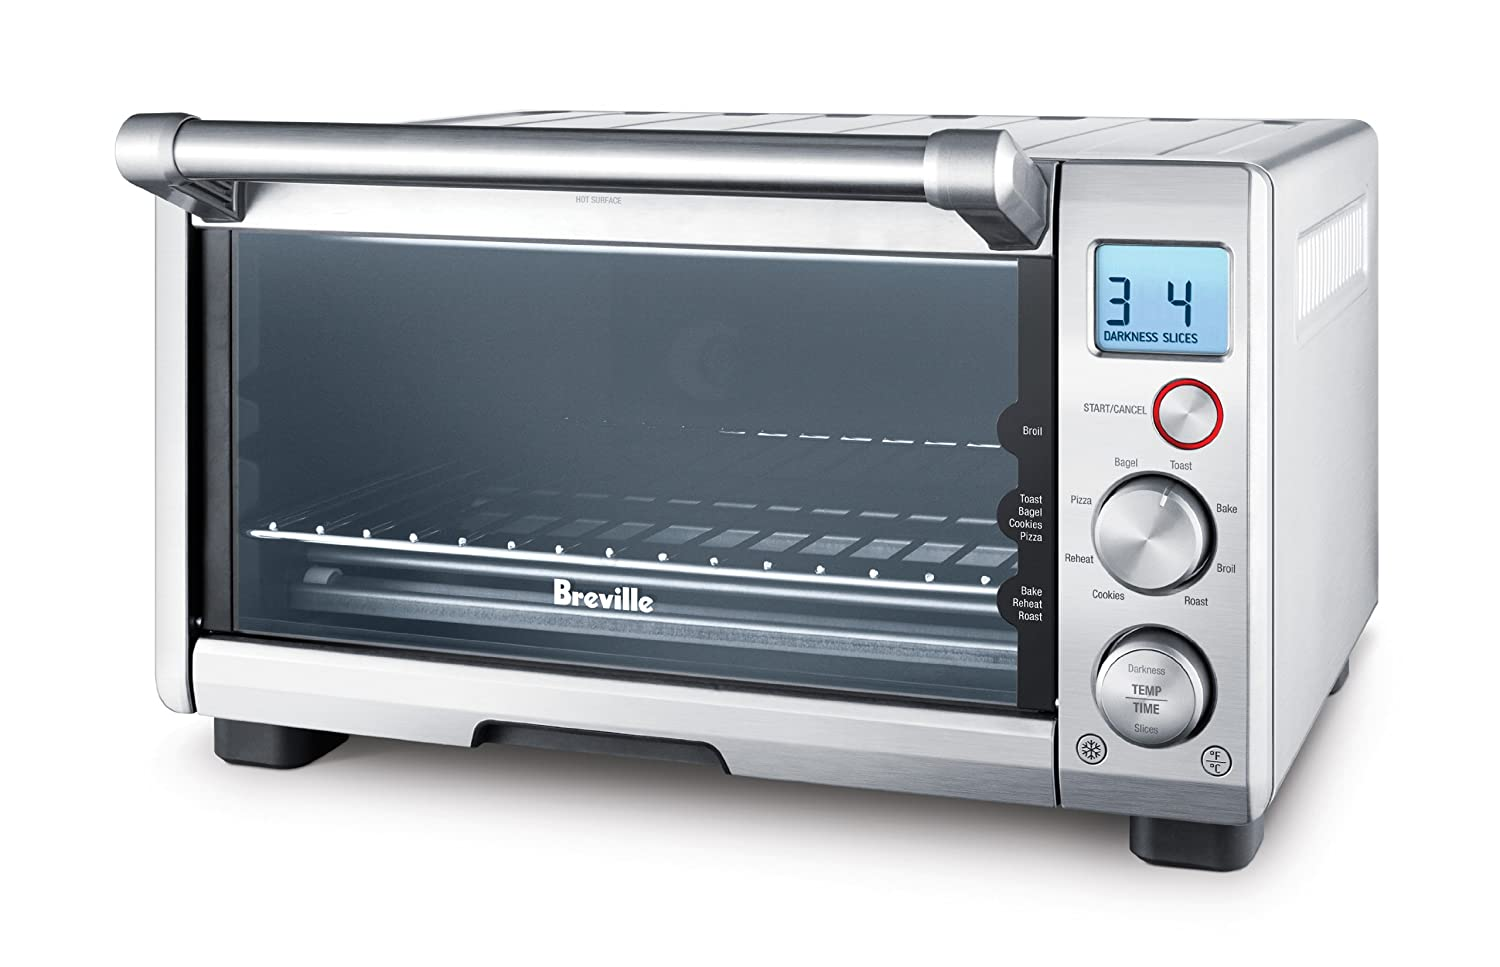 Breville Counter Top Toaster Oven BOV650XL